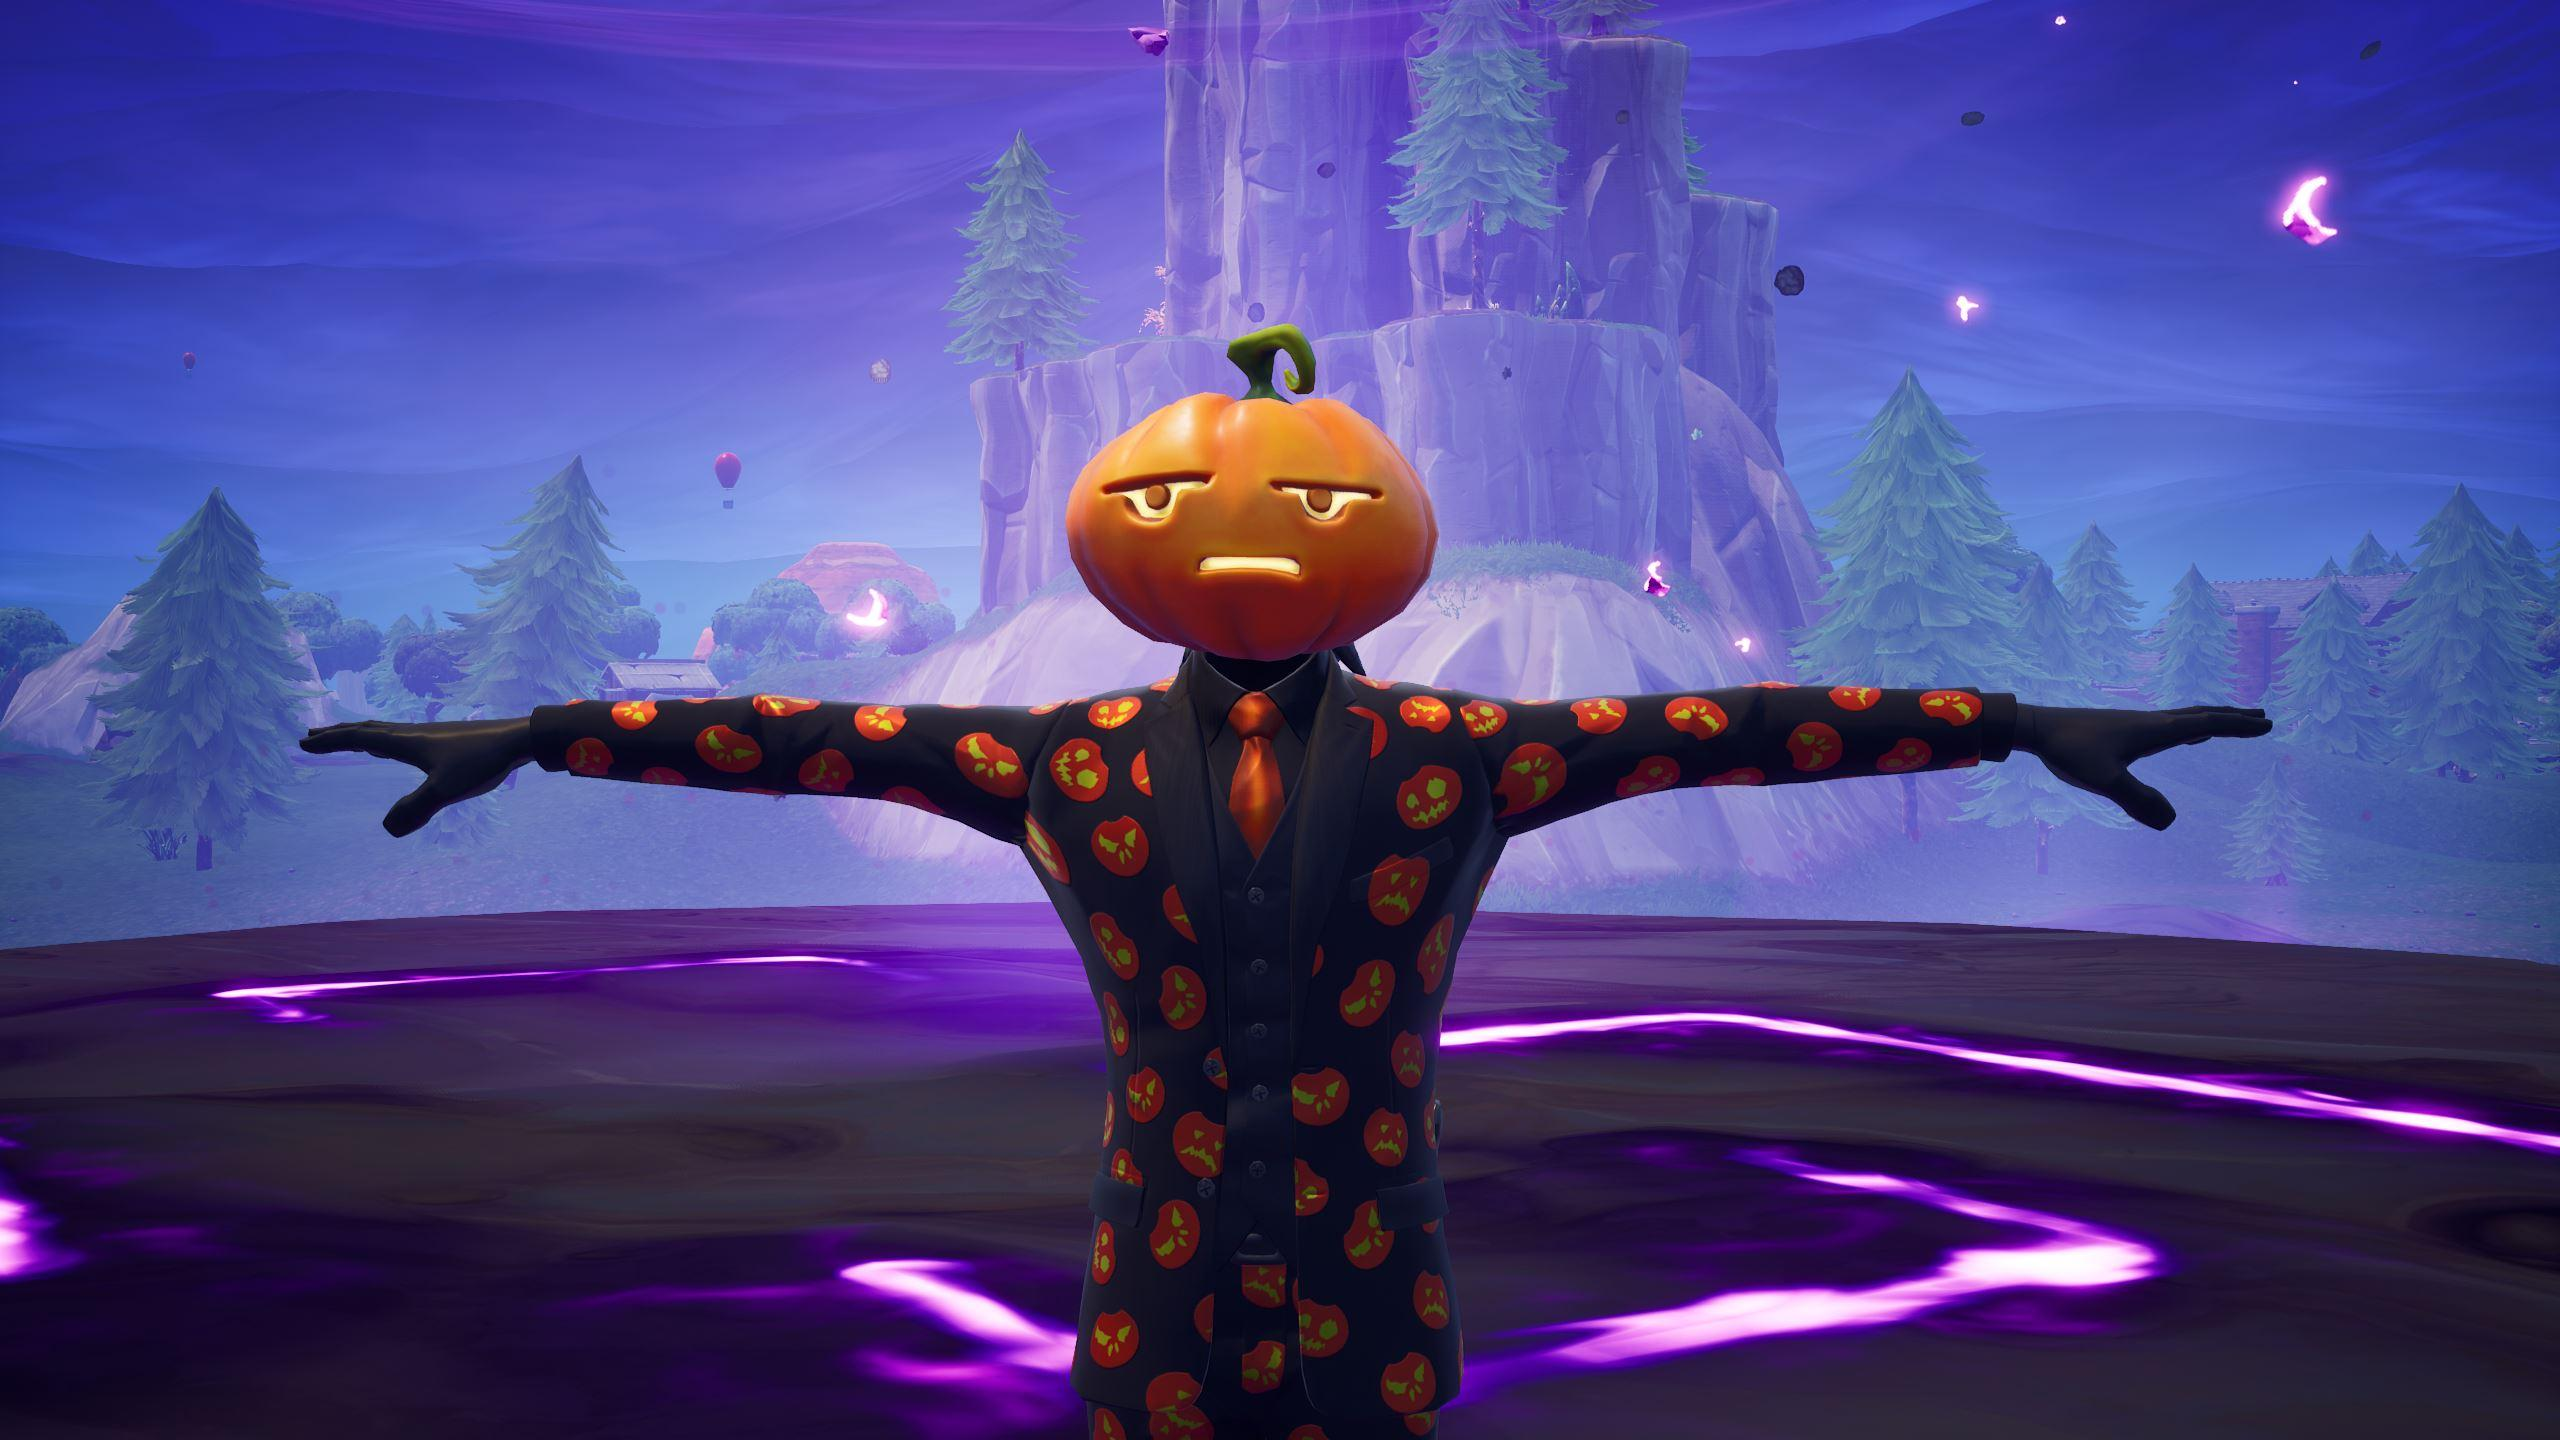 Cool Wallpaper Of Jack Gourdon | PaperPull